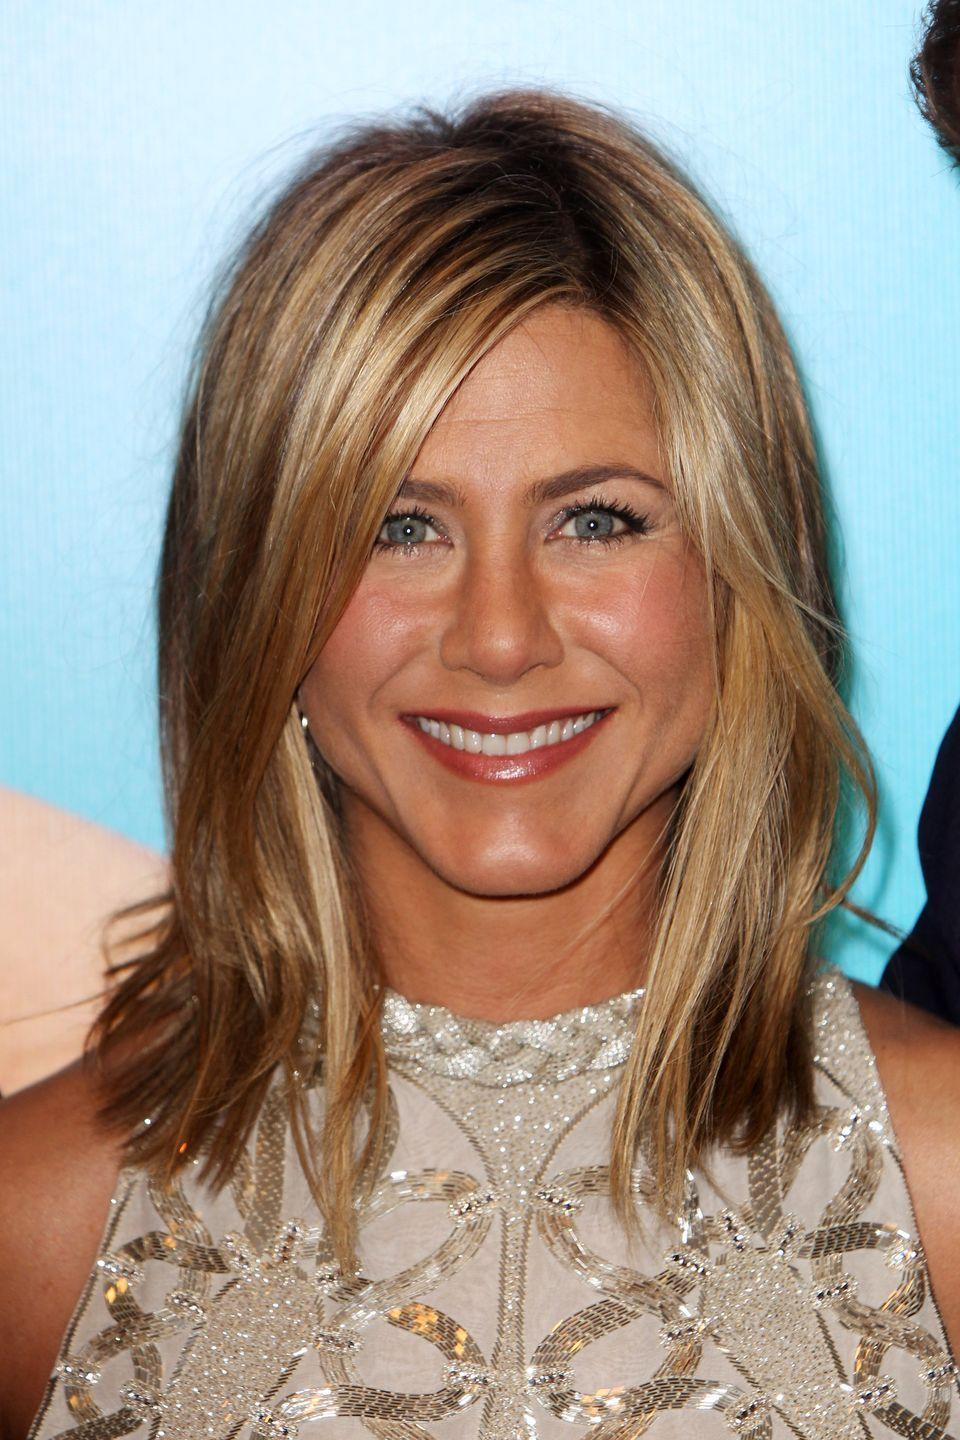 <p>With her glowing complexion and highlighted shoulder-length hair, Jen looked summer-ready all year round.</p>